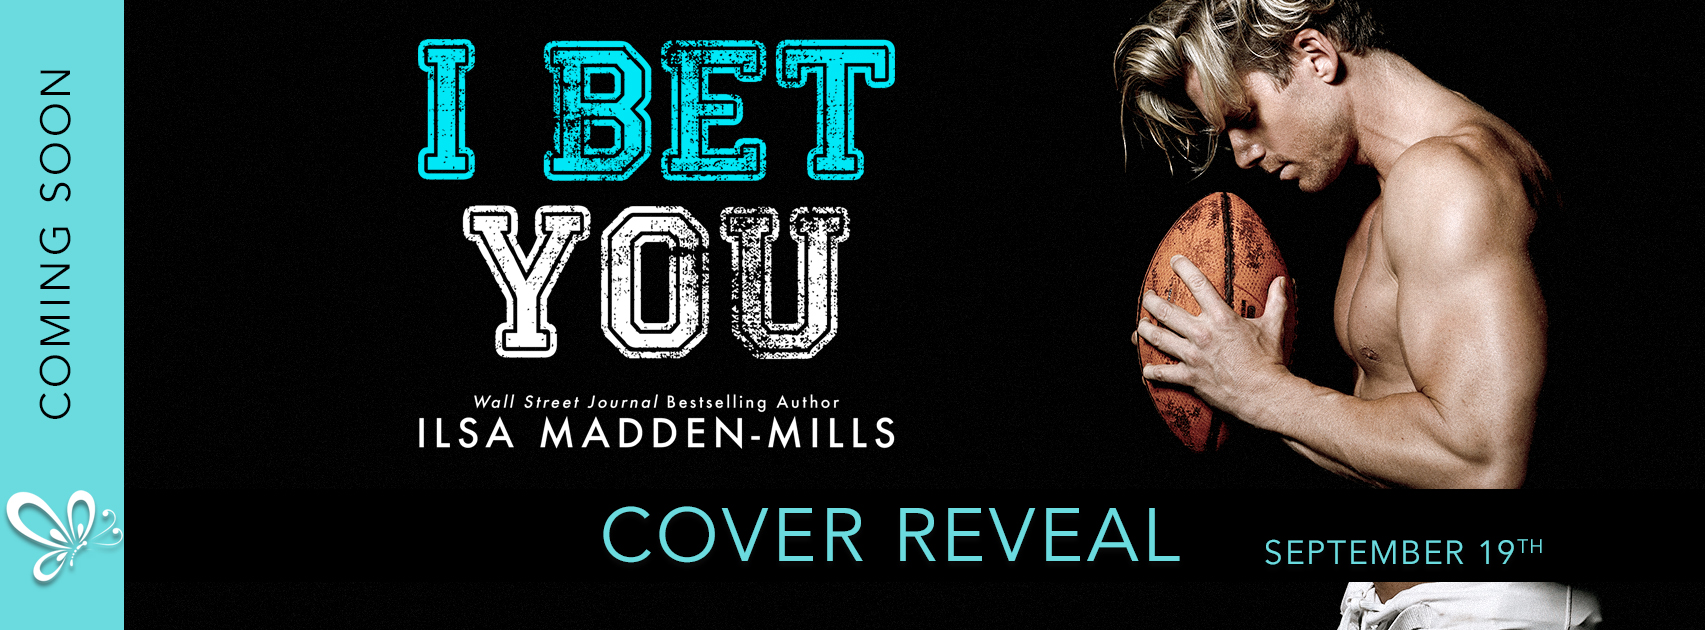 Cover Reveal:  I Bet You (The Hook-Up #2) by Ilsa Madden-Mills